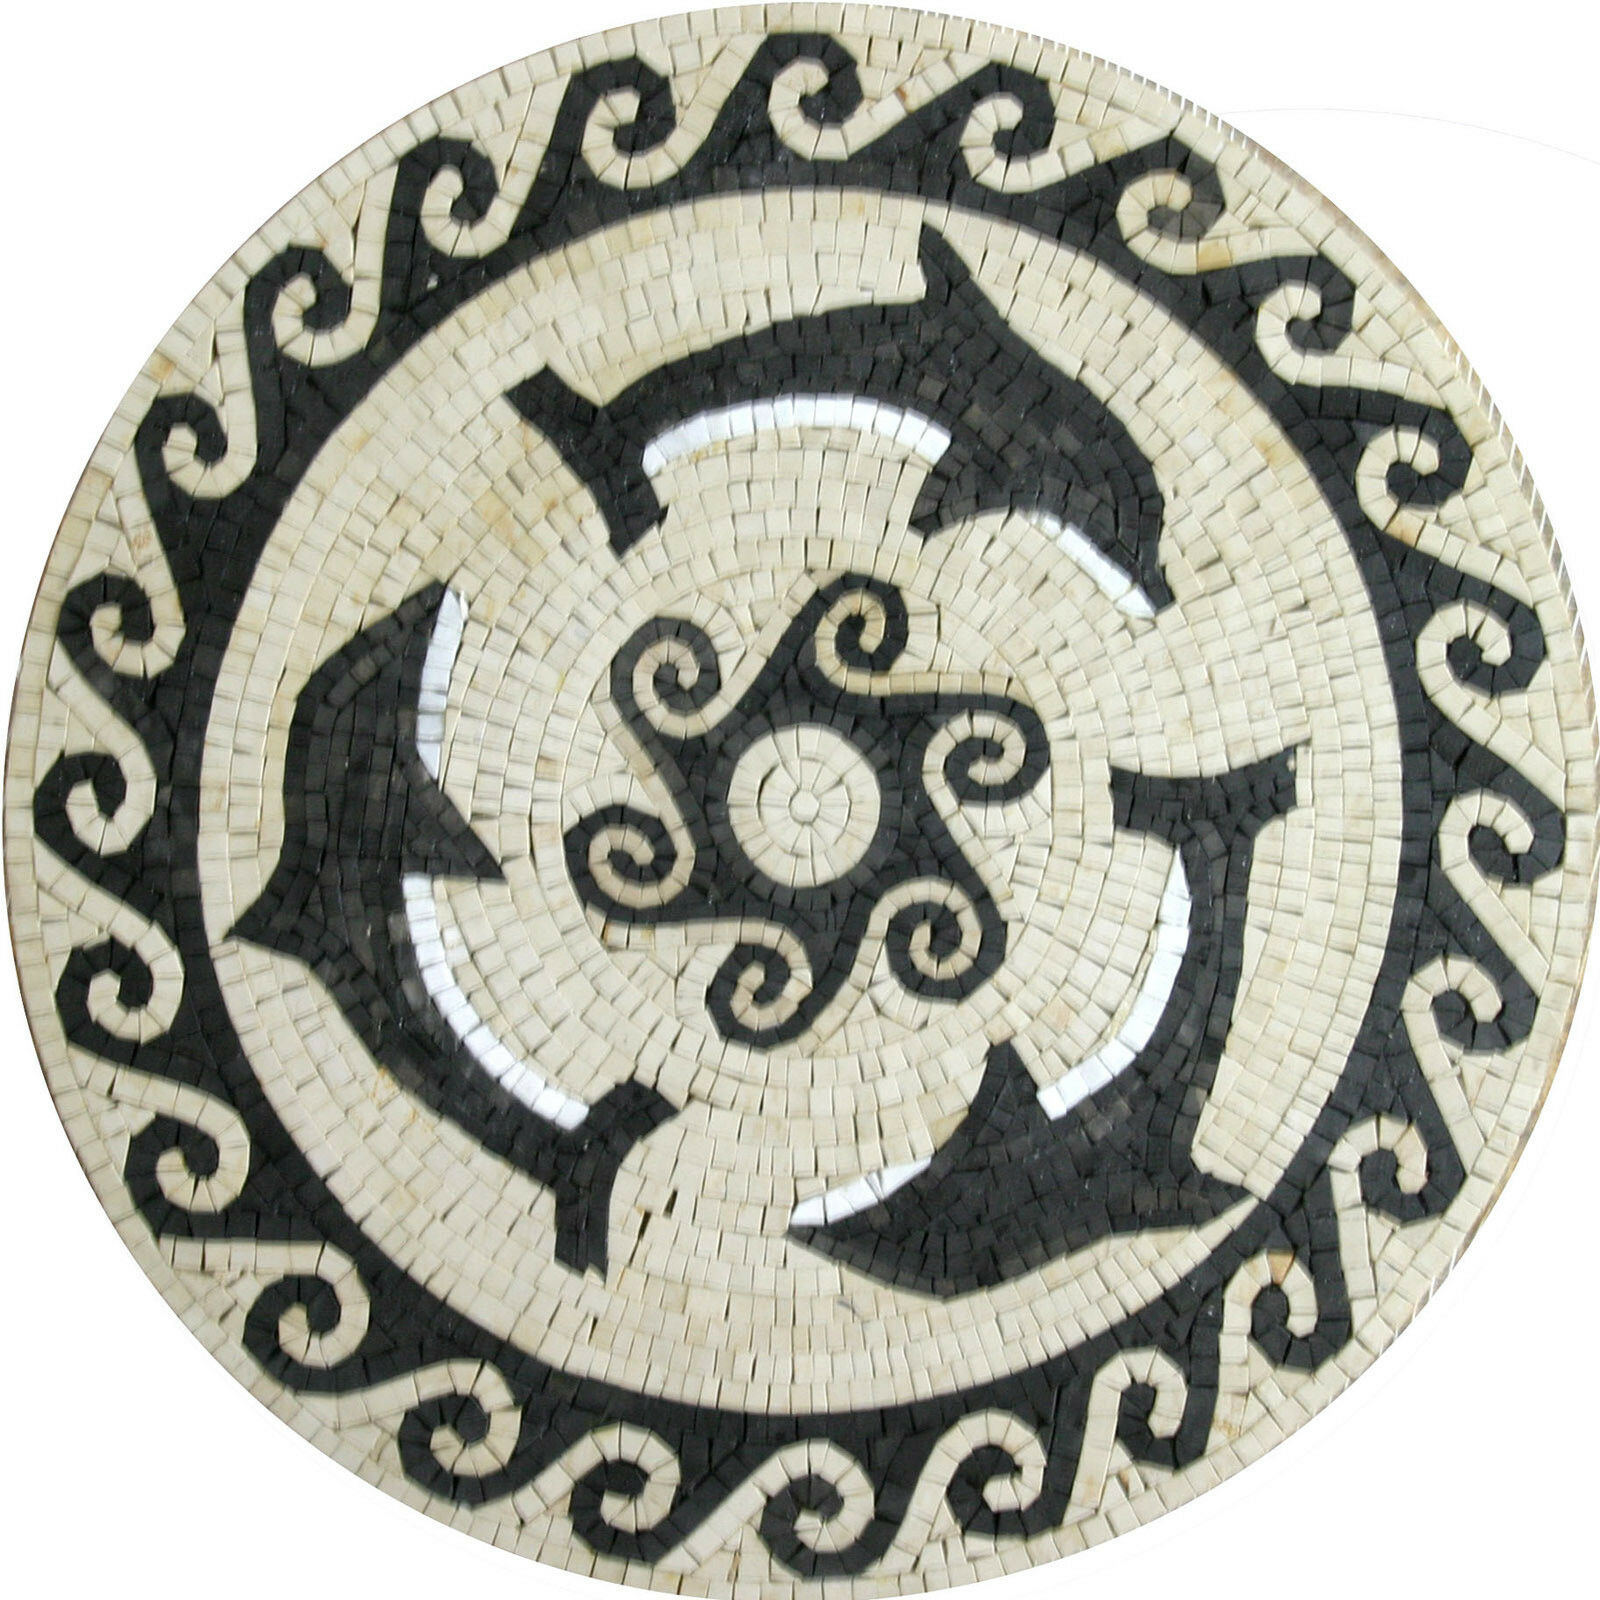 Dolphins Nautical Round Medallion  Tile Marble Mosaic MD1002